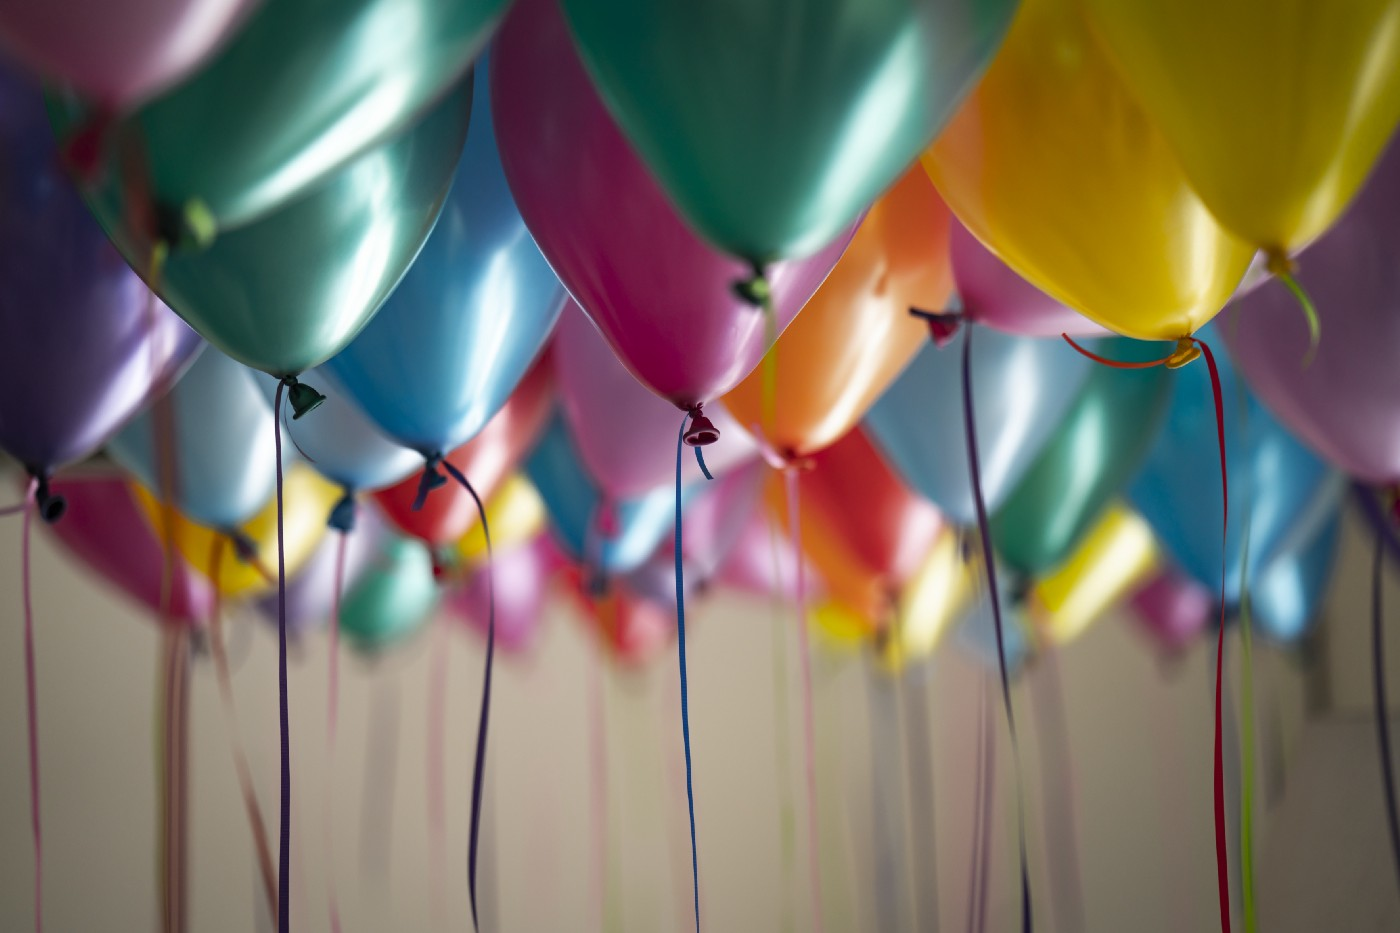 Side angle of various colored balloons filing a dimly ceiling space. Colors include teal, yellow, pink, orange, red and blue.